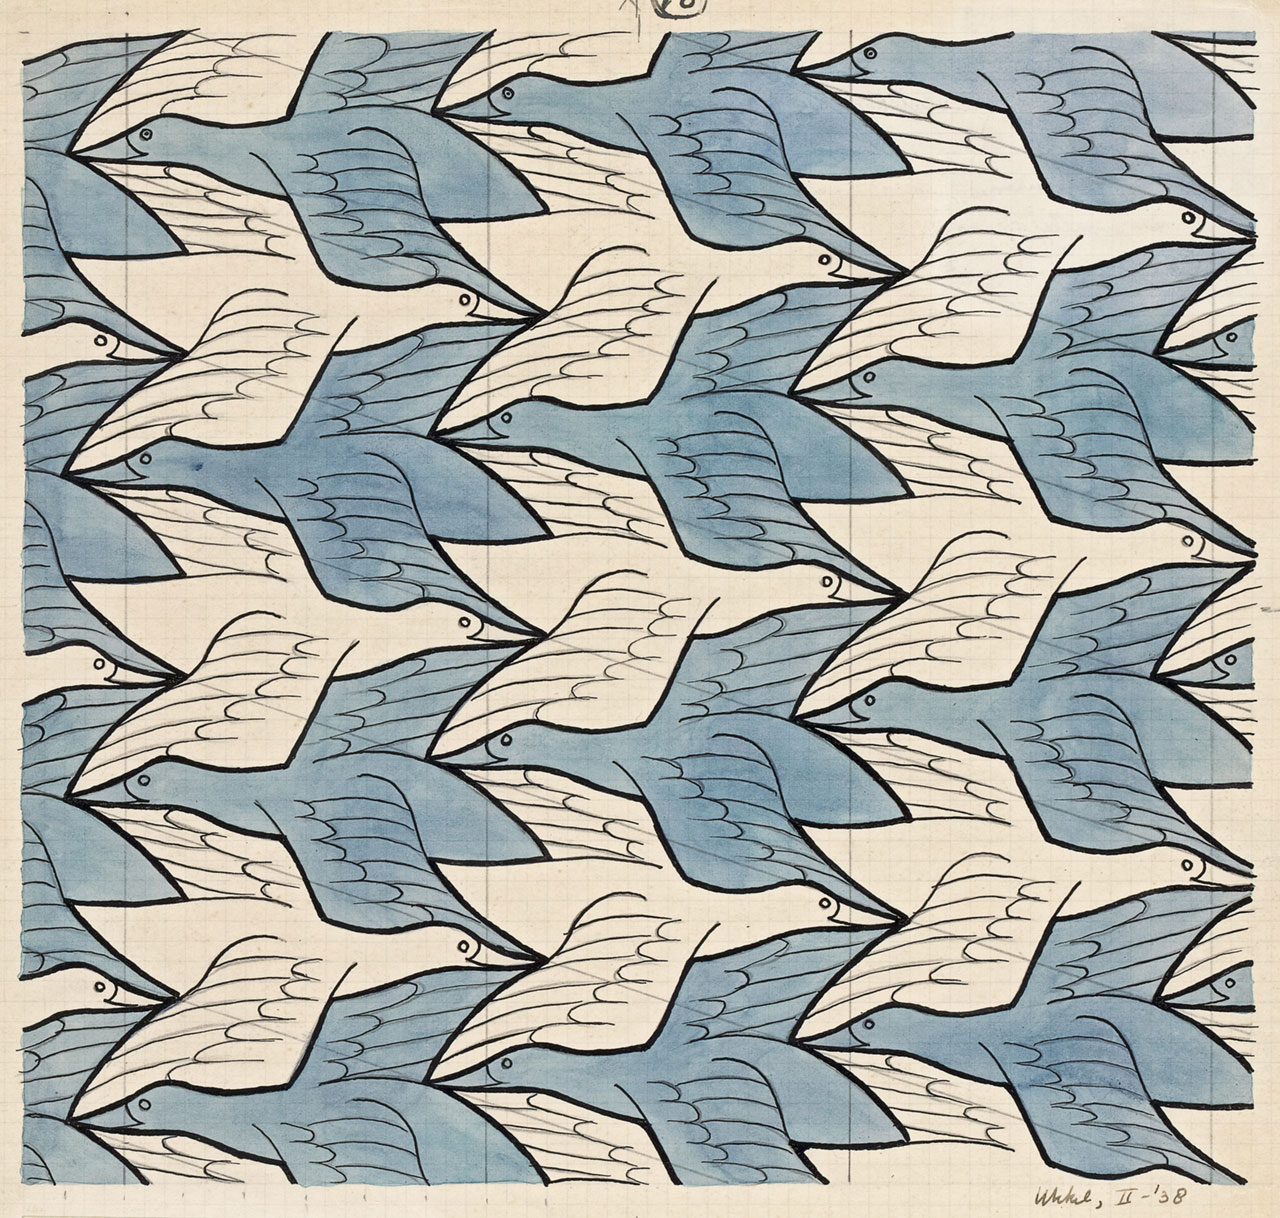 M. C. Escher, Regular division of the plane no. 18 (Two birds) February 1938, pencil, pen and ink and watercolour on graph paper. Escher Collection, Gemeentemuseum Den Haag, The Hague, the Netherlands © The M. C. Escher Company, the Netherlands. All rights reserved.